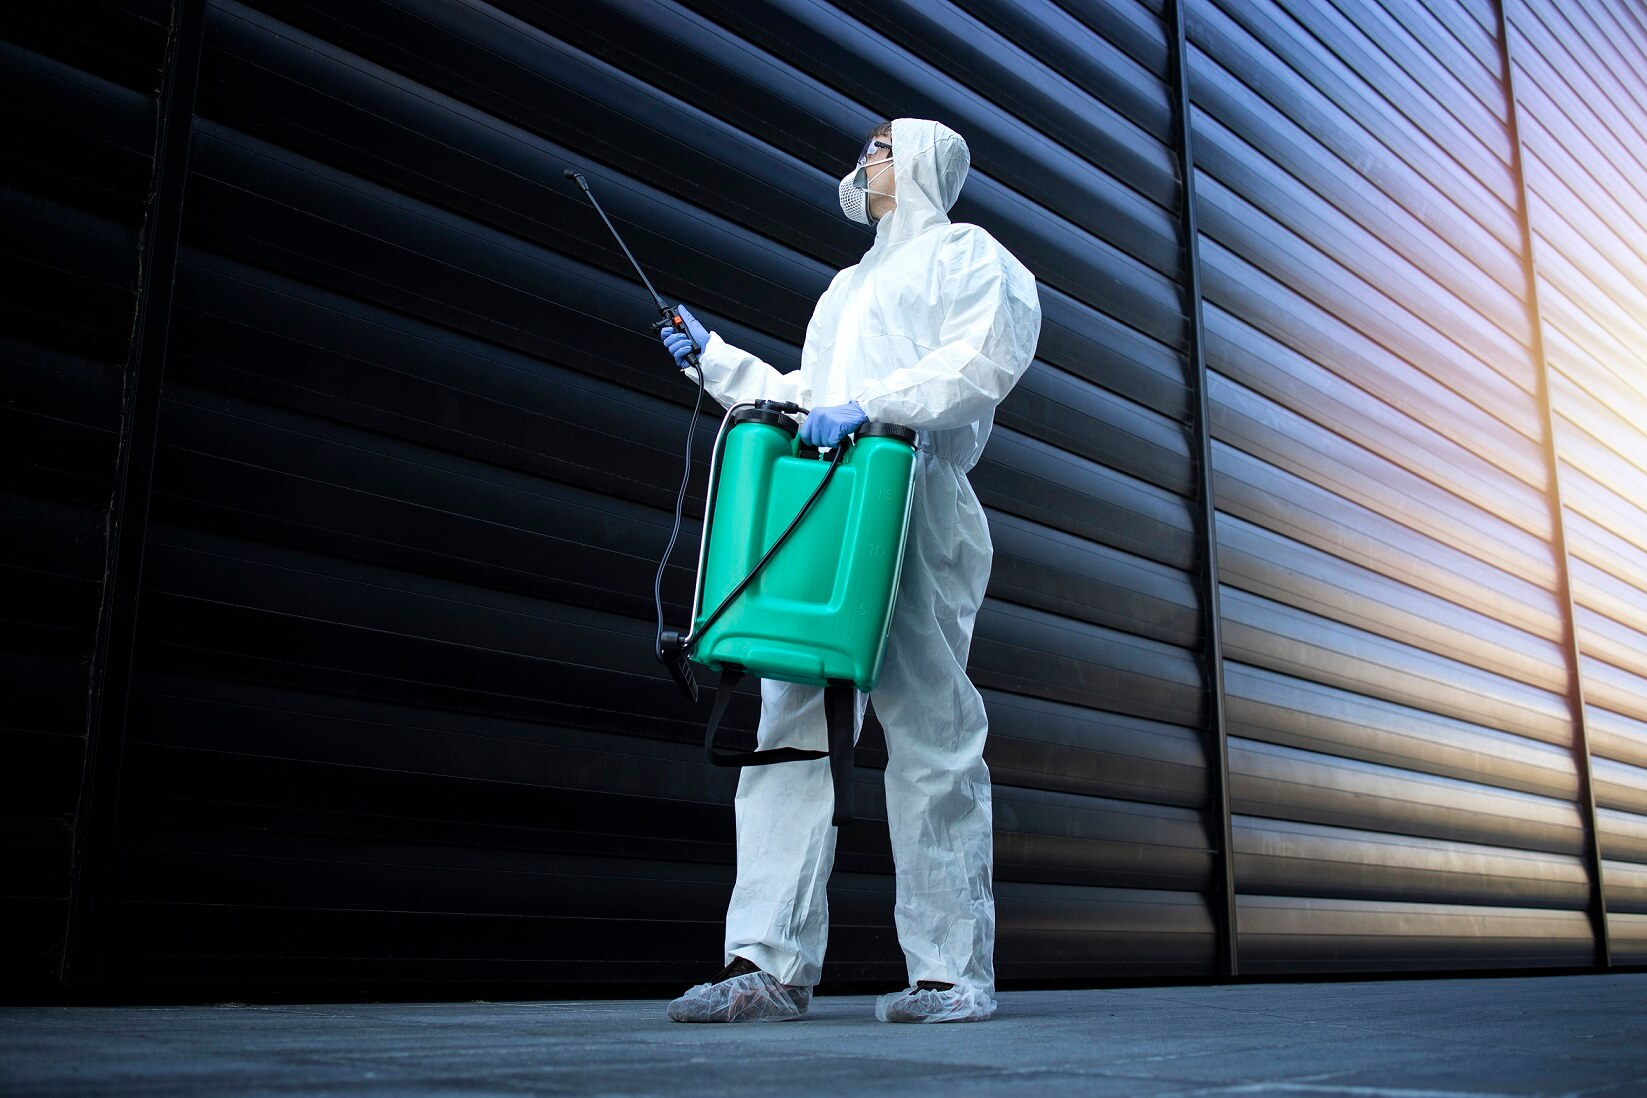 person-white-chemical-protection-suit-doing-disinfection-pest-control-spraying-poison-kill-insects-rodents